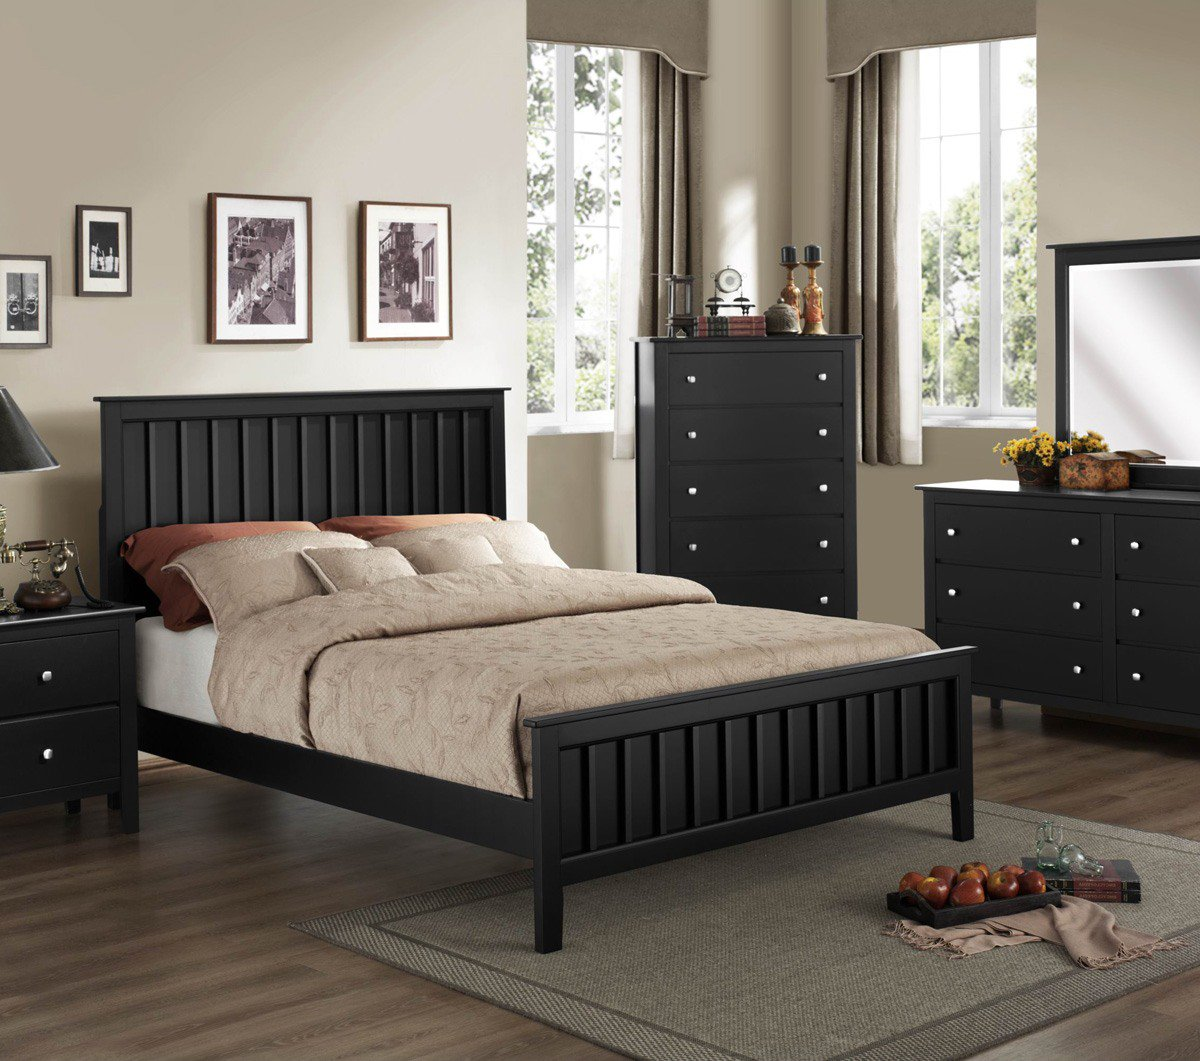 bedroom furniture sets big lots interior exterior ideas on big lots furniture sets id=36881